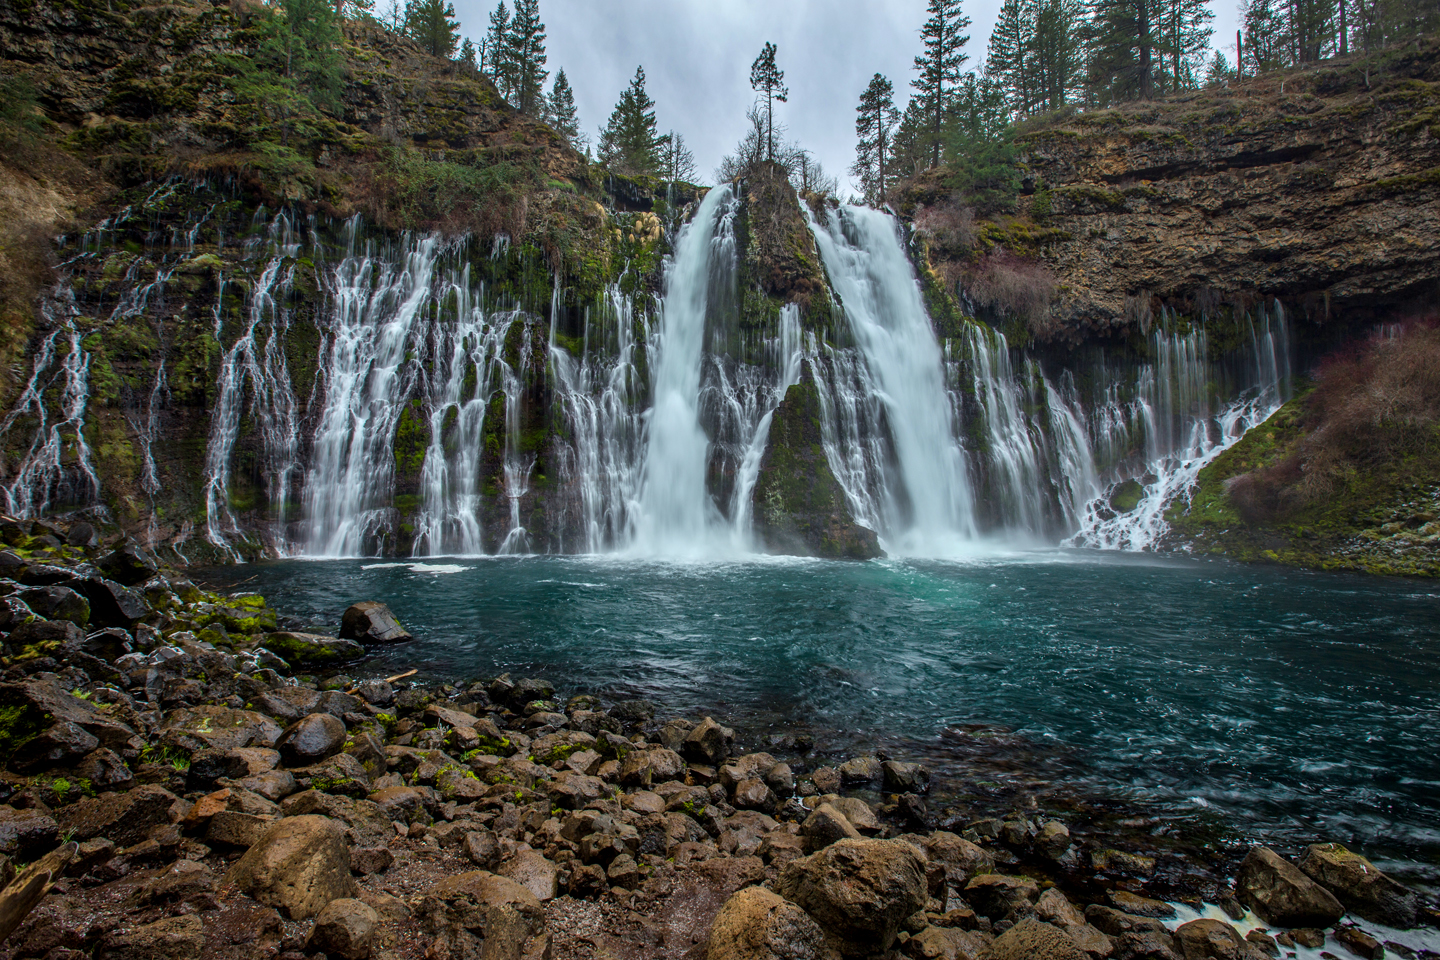 Burney Falls Hike | A Chilly Winter Morning